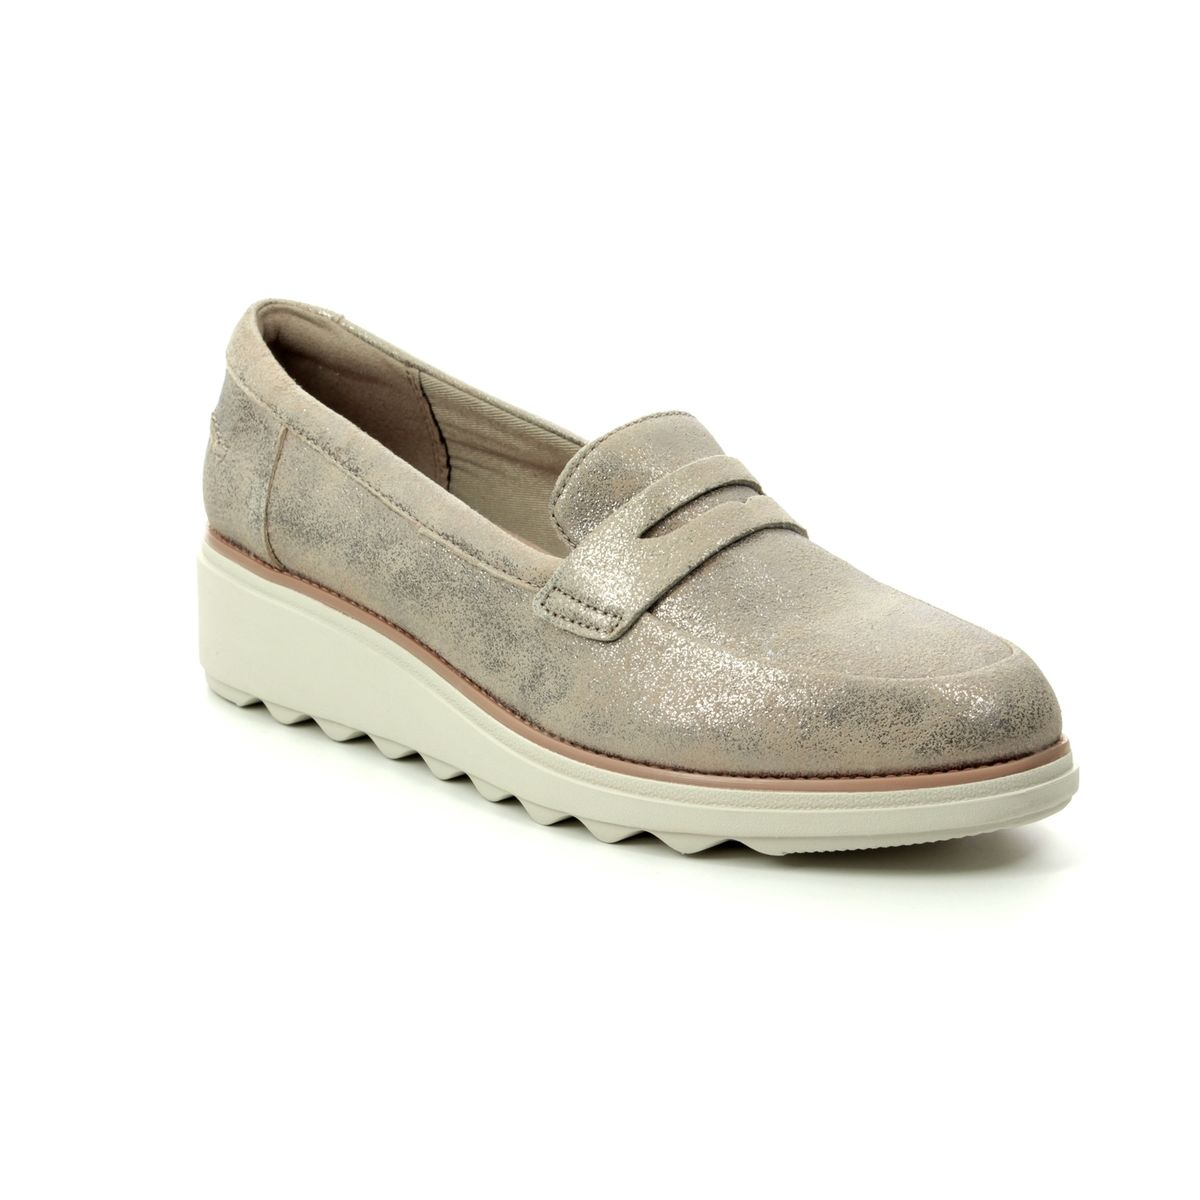 910cae3072d4 Clarks Wedge Shoes - Pewter suede - 406504D SHARON RANCH